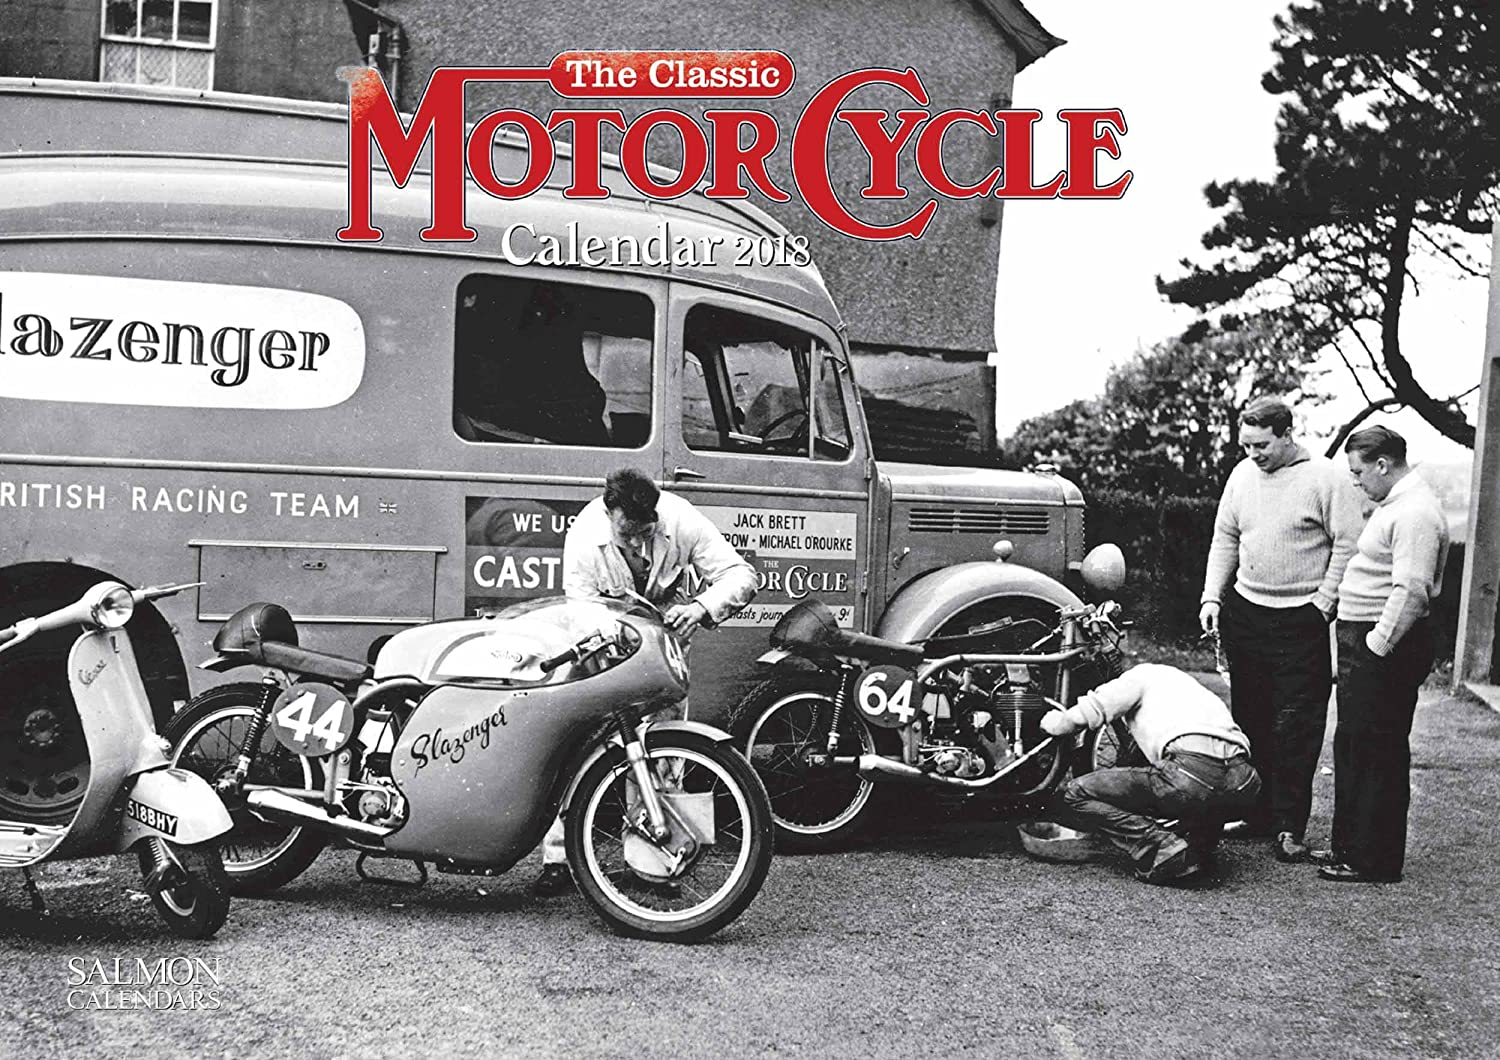 The Classic Motorcycle Calendar 2018 - Photocolour Series: Amazon.co.uk:  Office Products